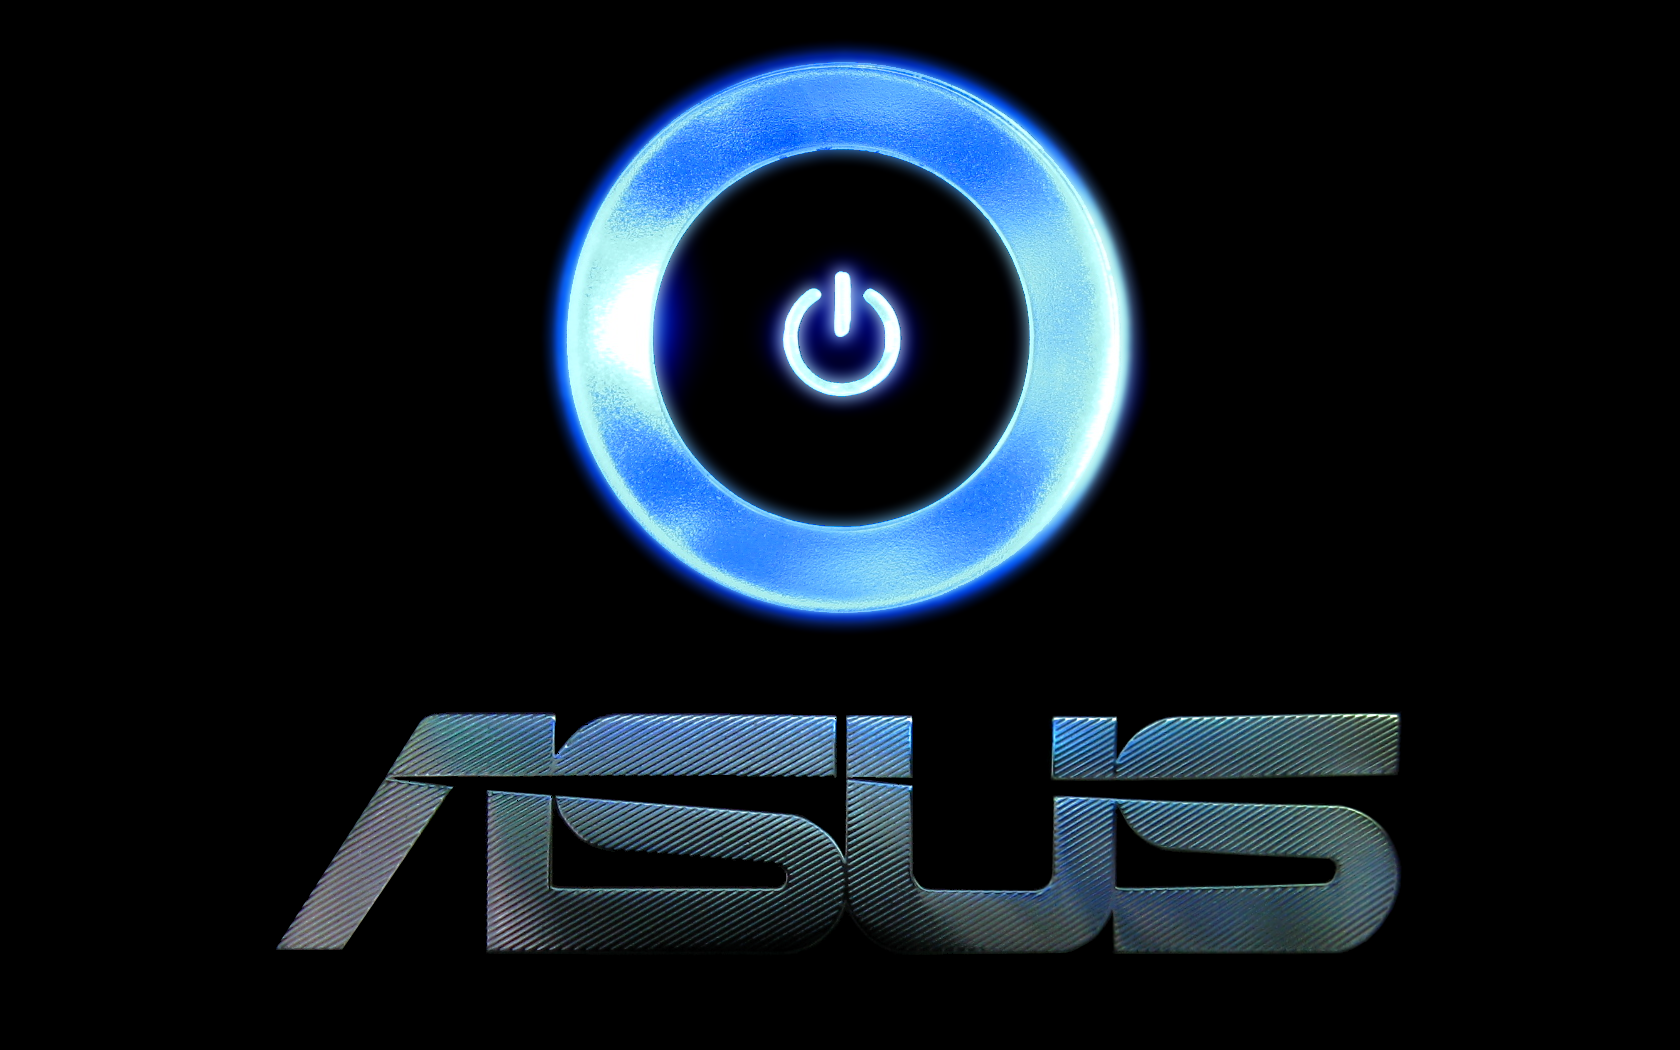 Asus Wallpapers Widescreen: Asus Wallpaper And Background Image